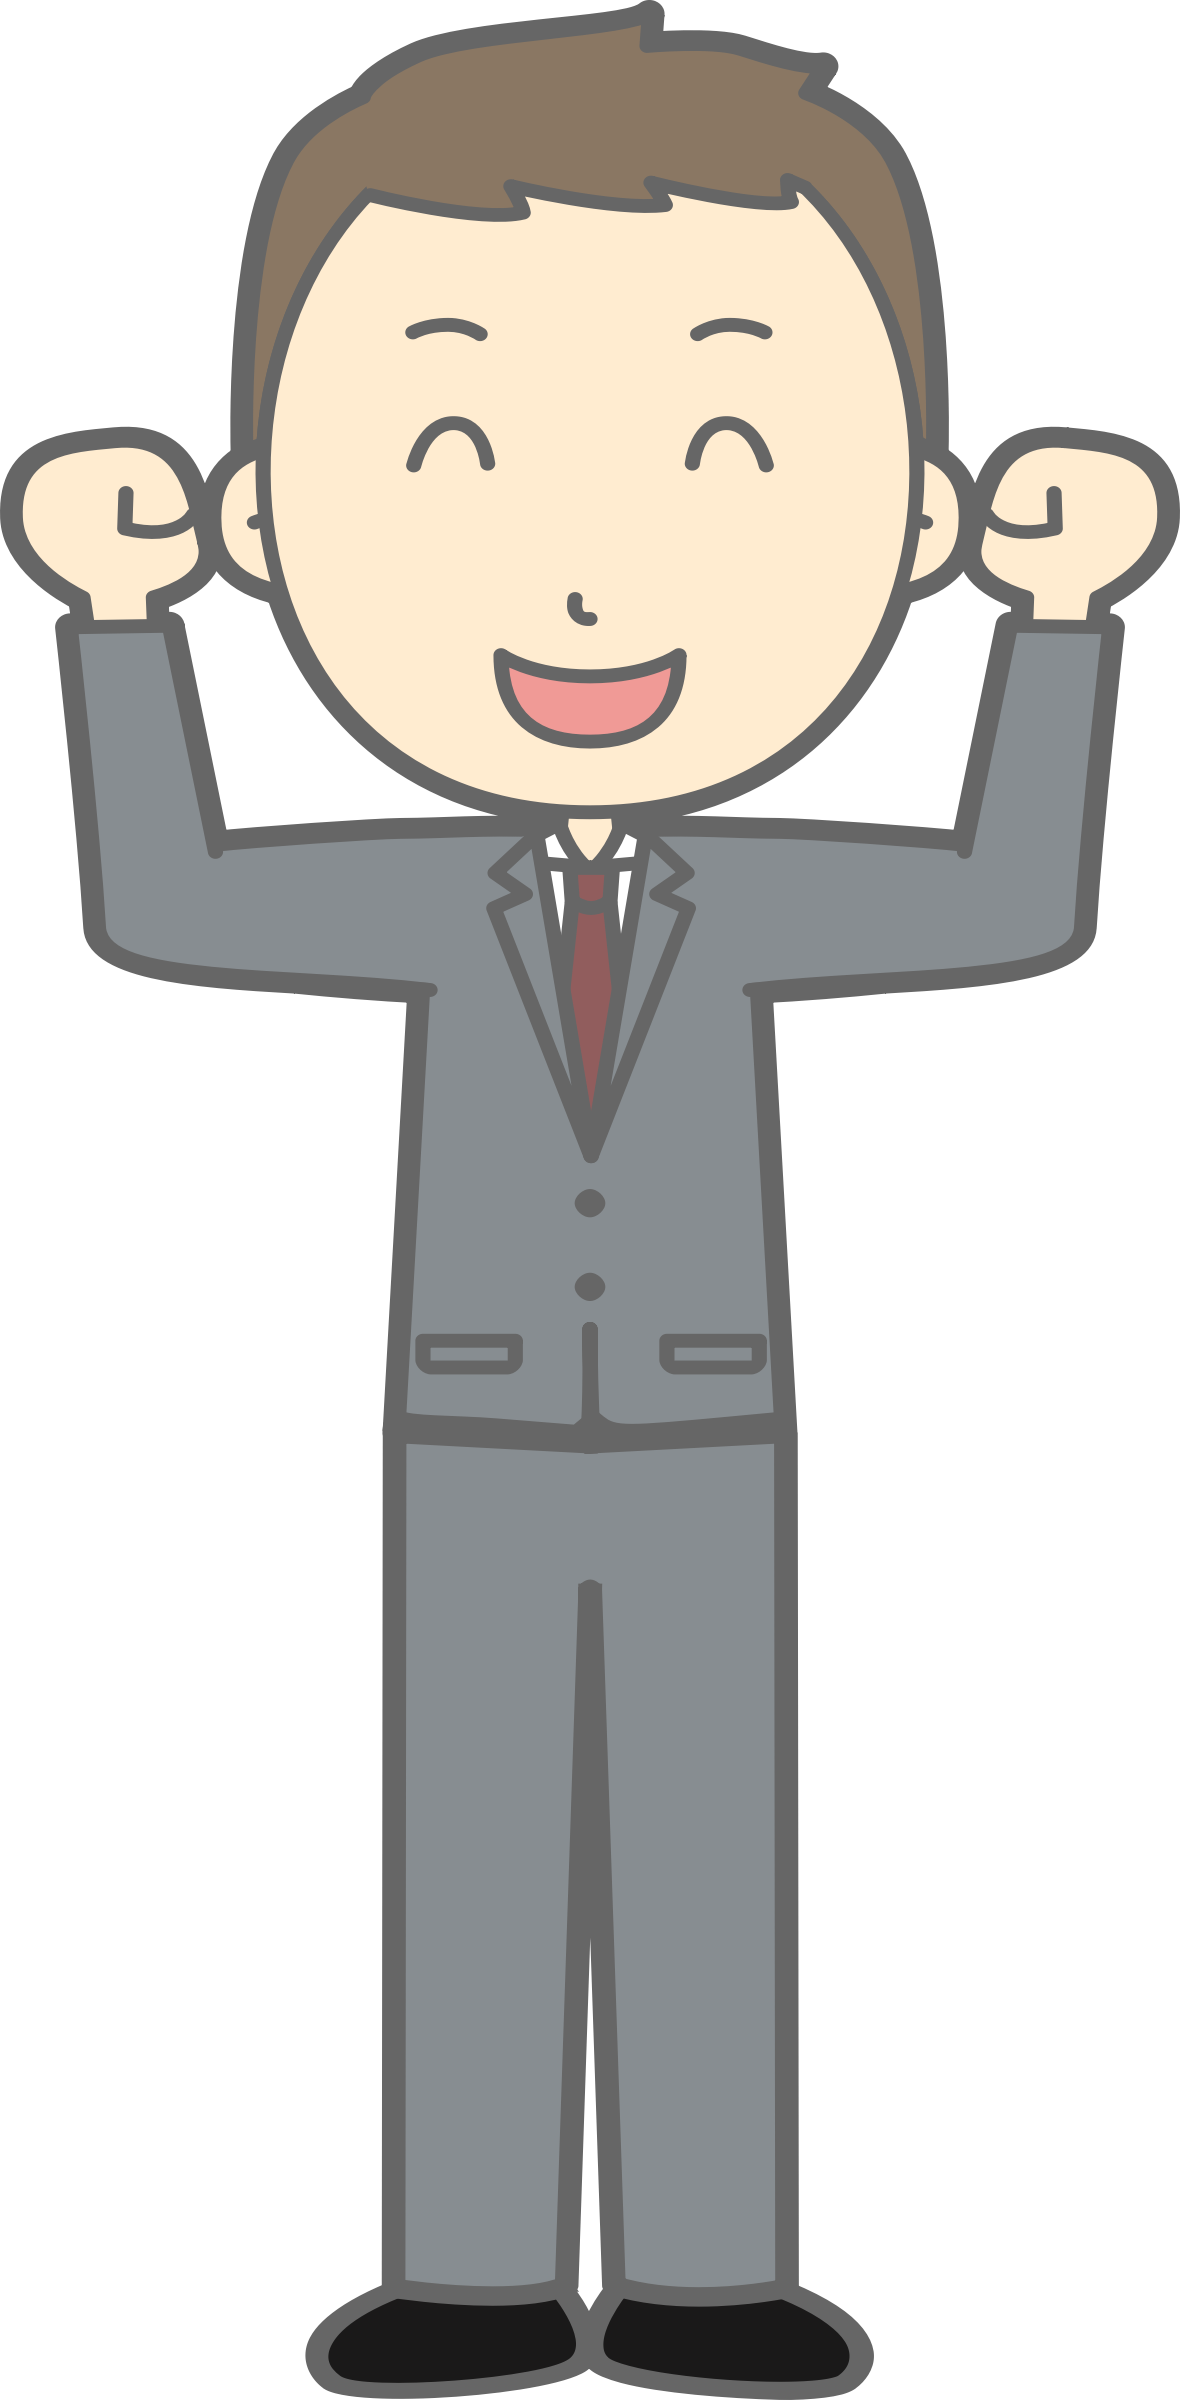 Person svg full body cartoon. Clipart male can do